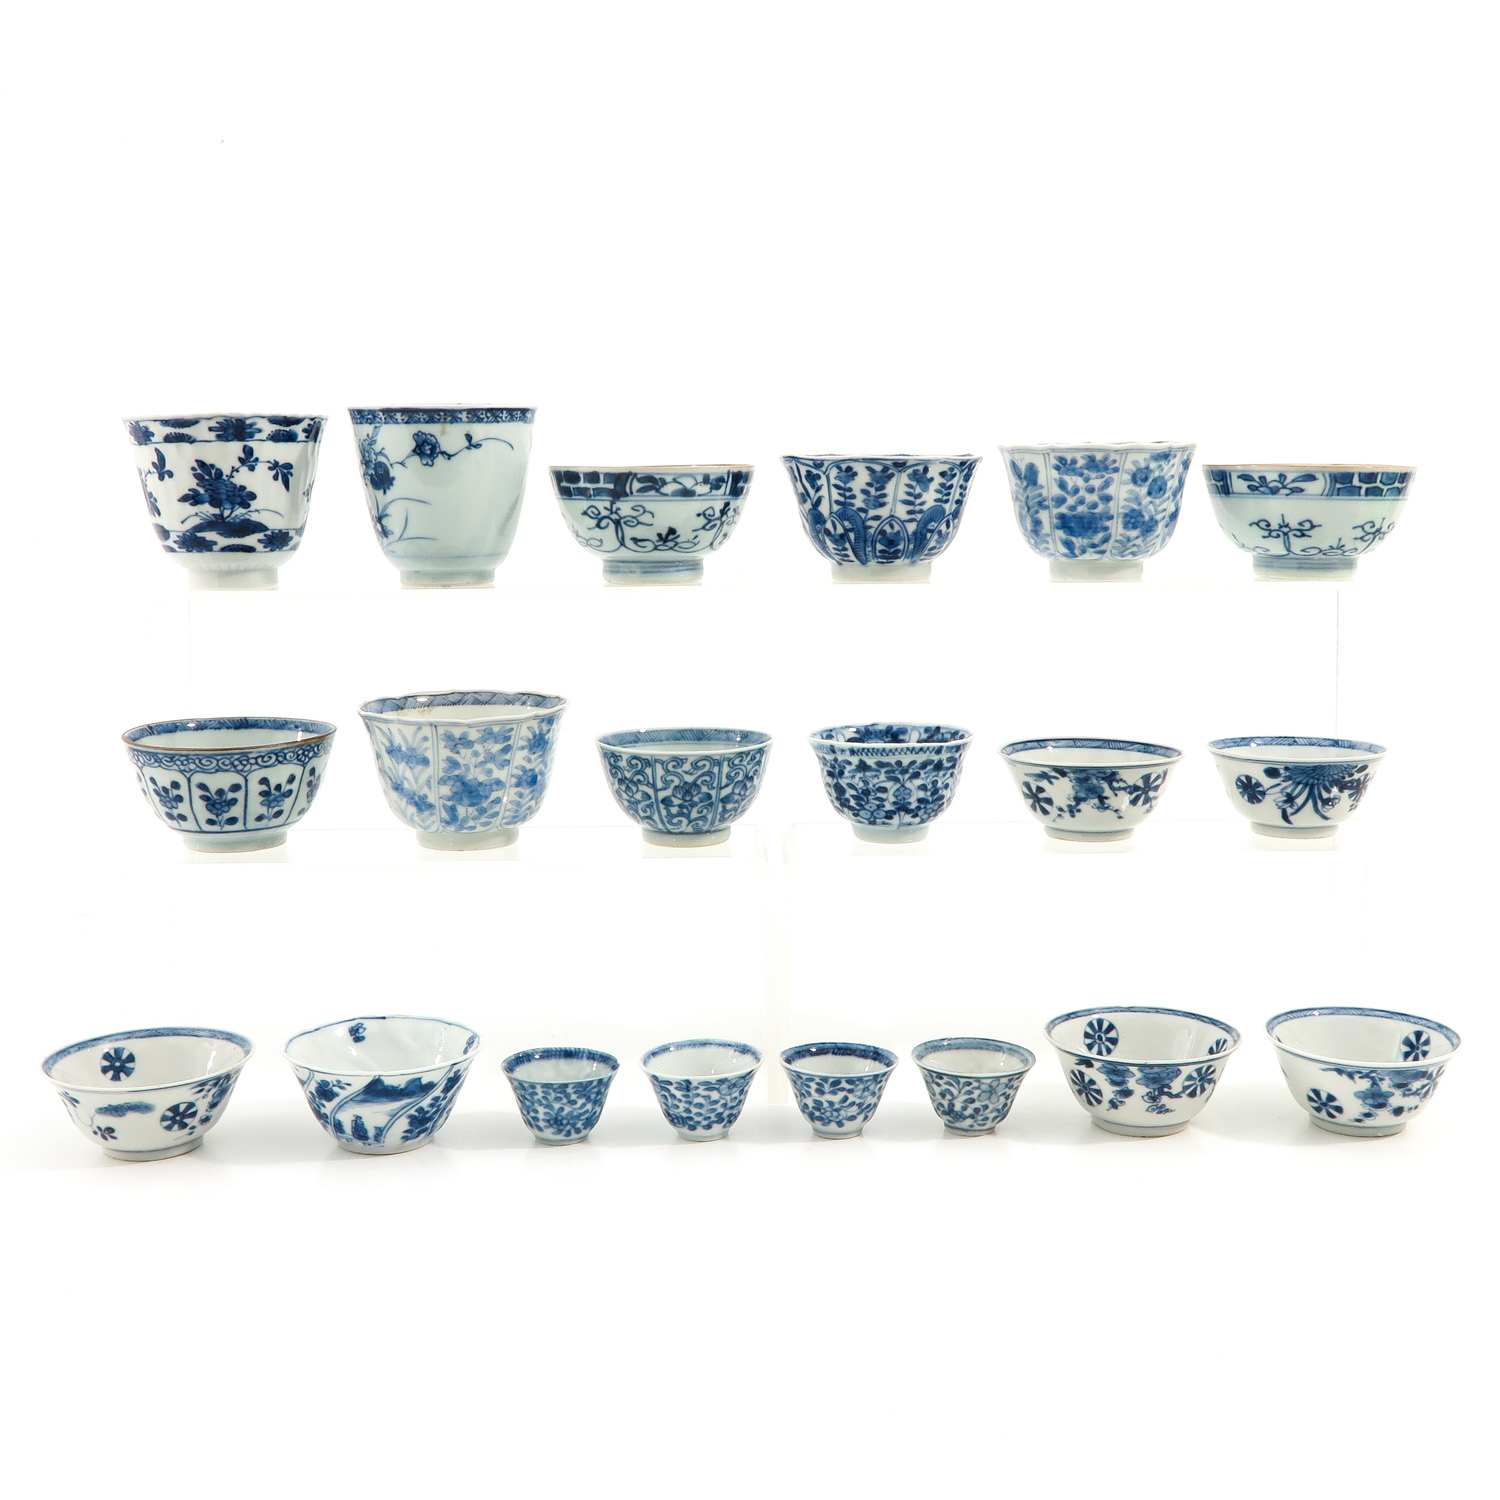 A Collection of 20 Cups - Image 3 of 10